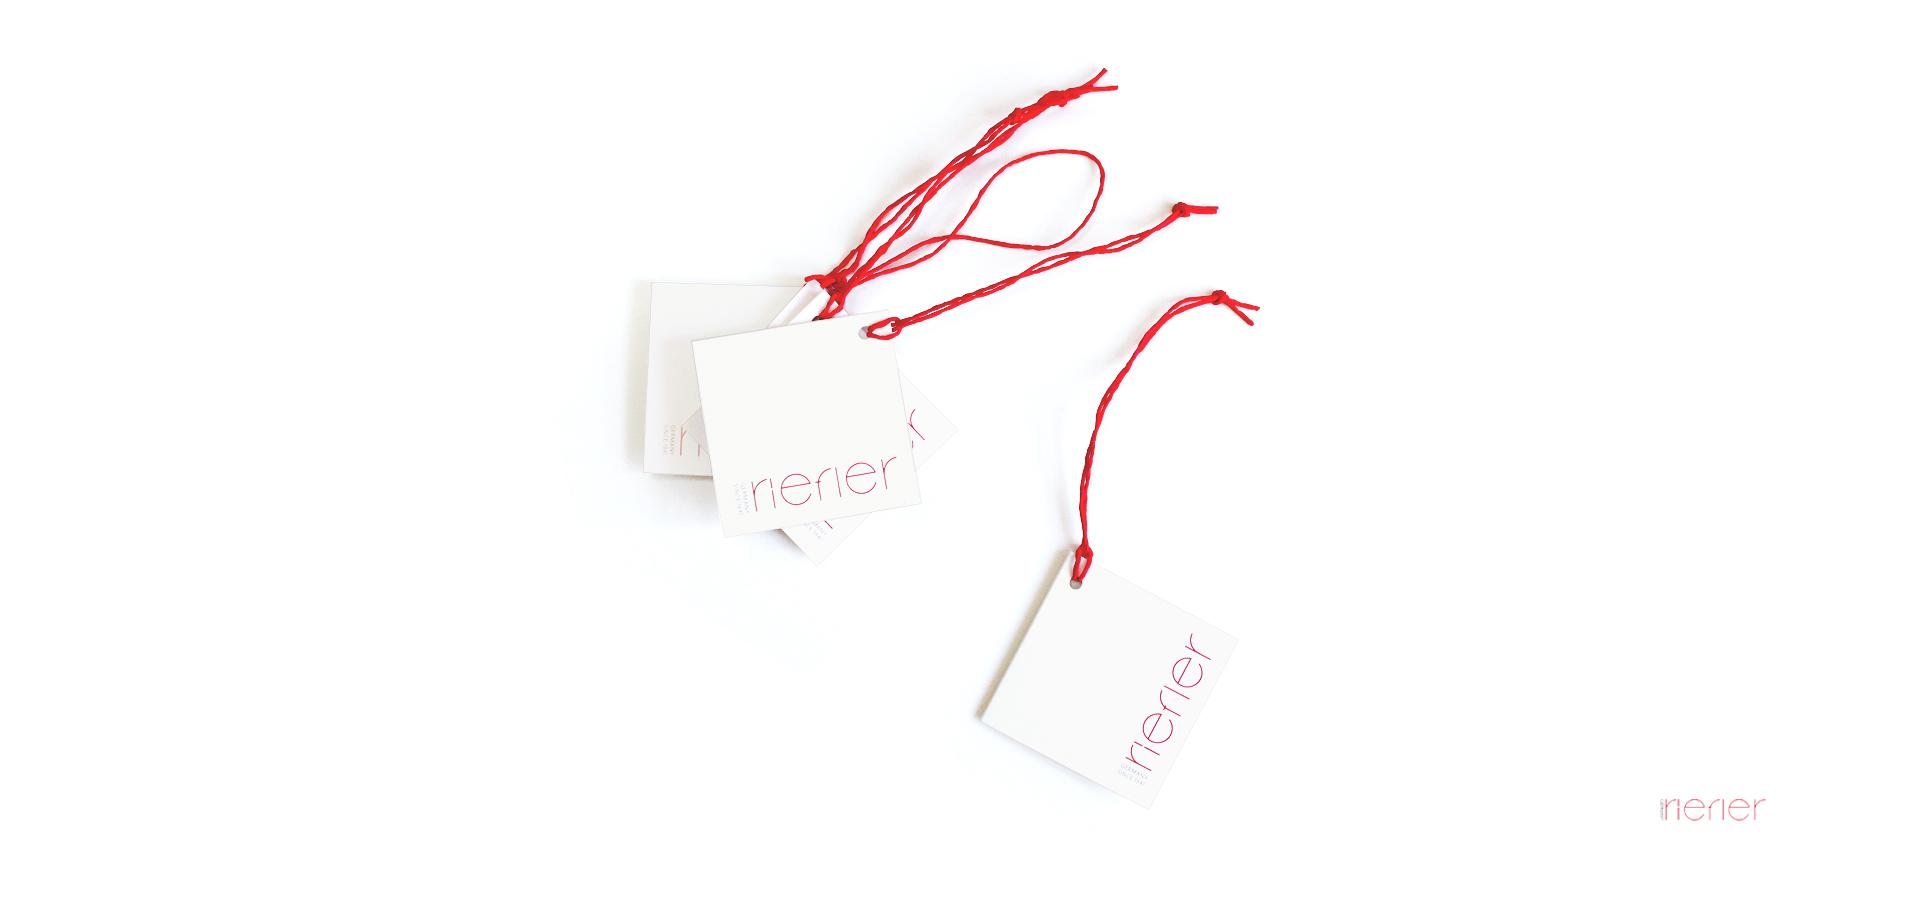 Riefler Product tags